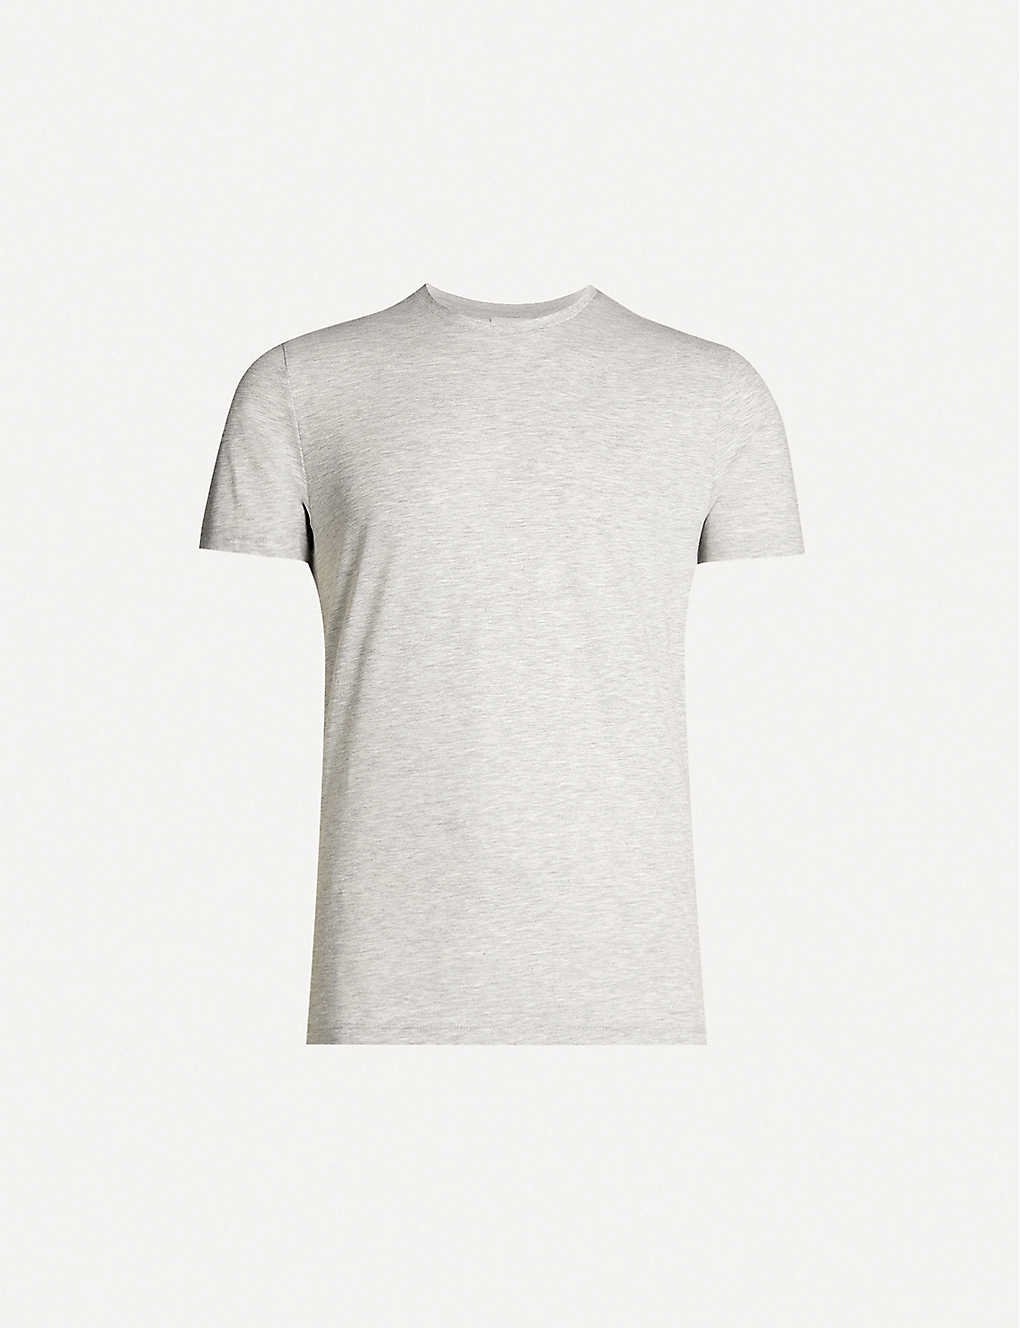 REISS: Bless marl cotton-jersey T-shirt